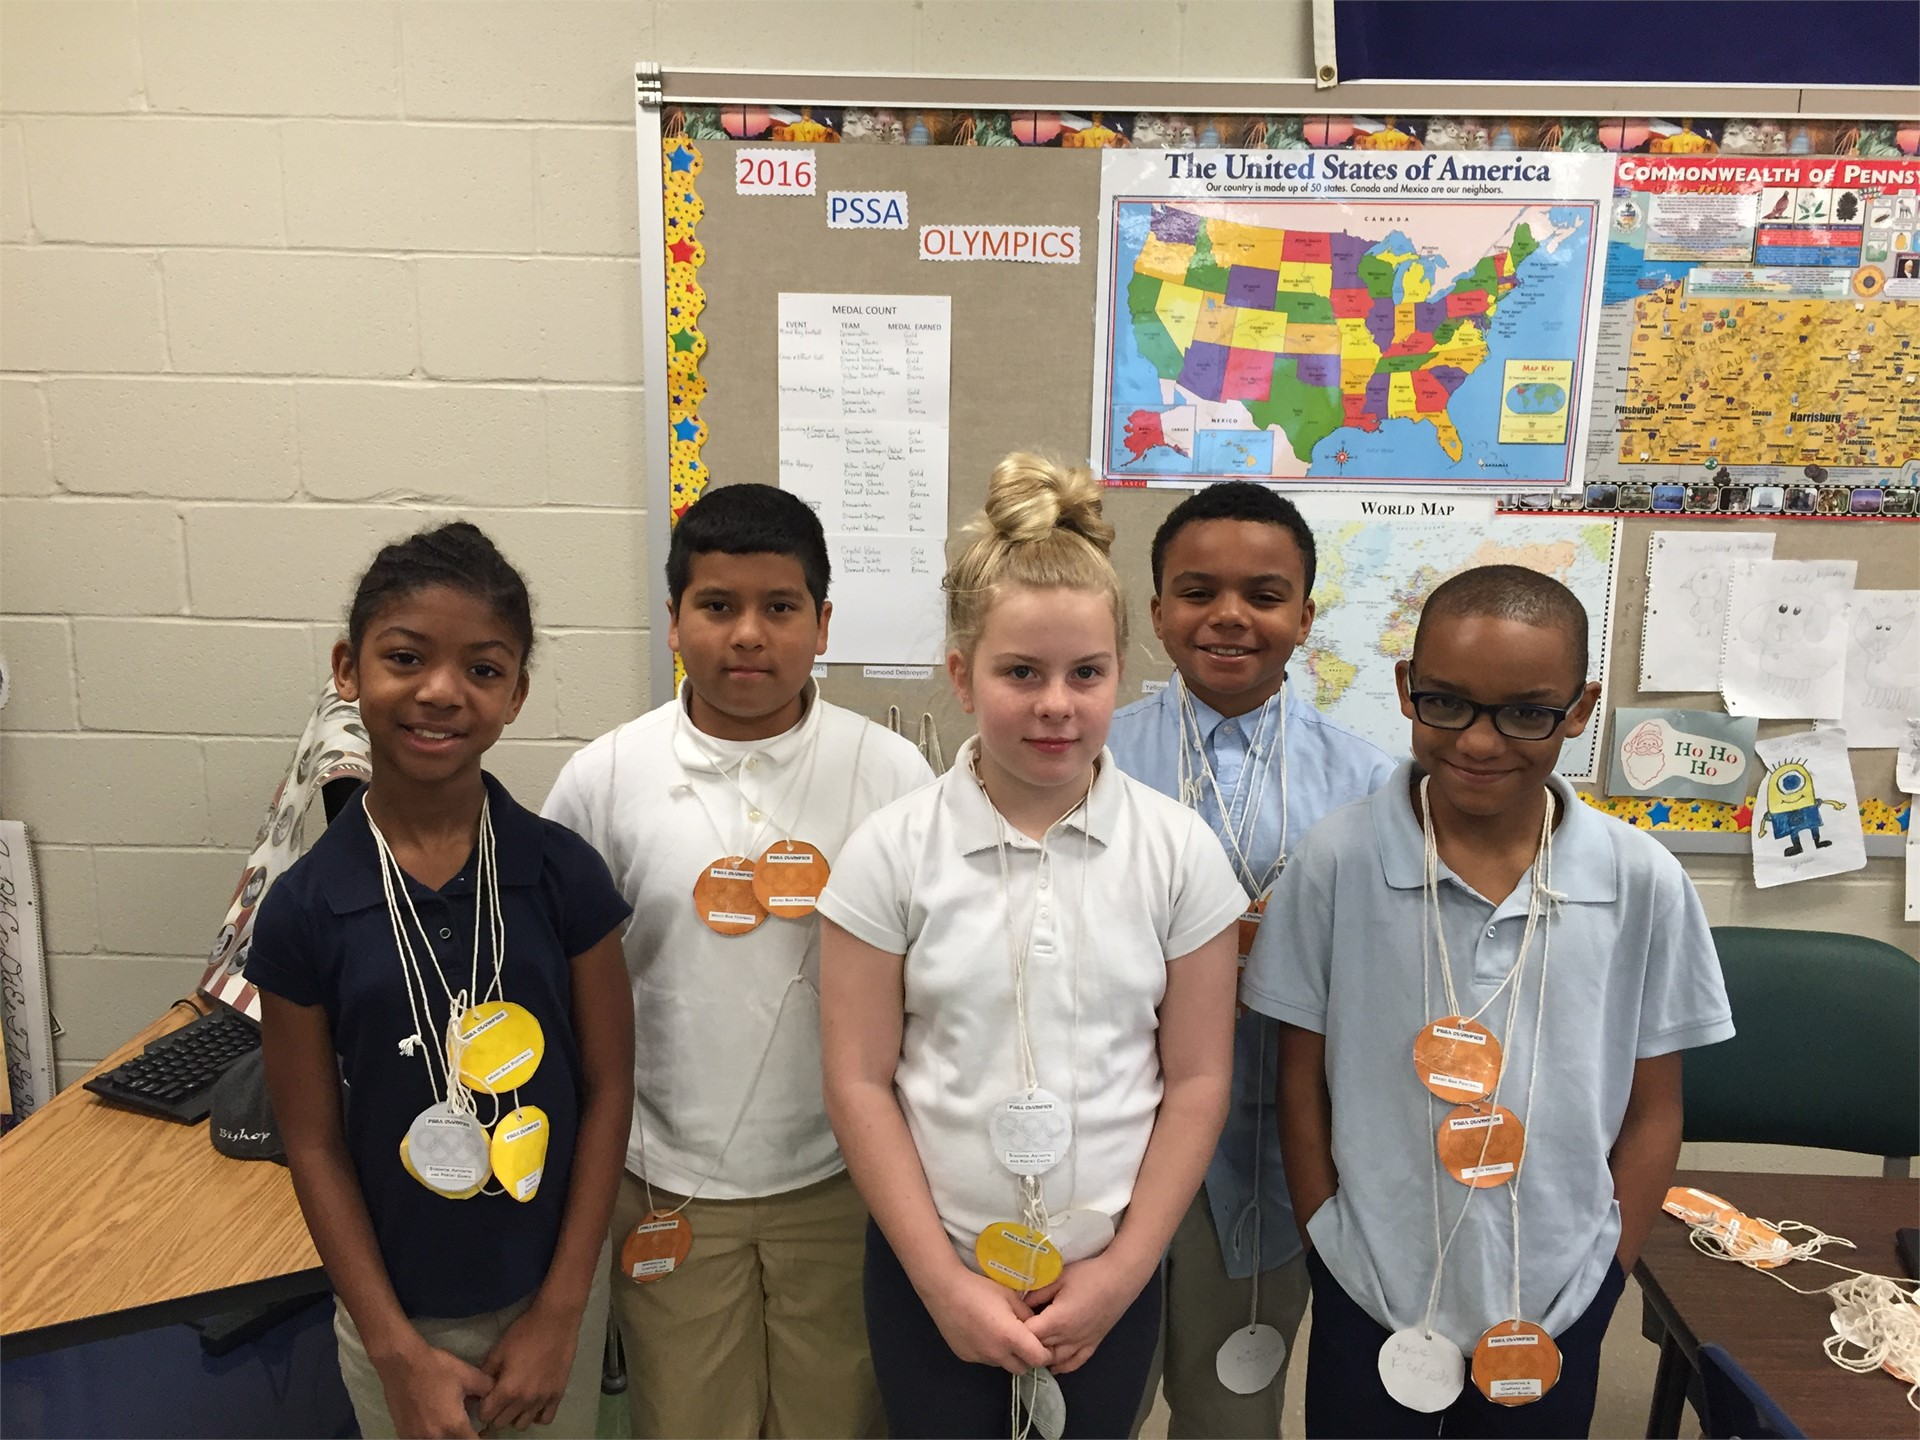 PSSA Olympic winners displaying their medals!